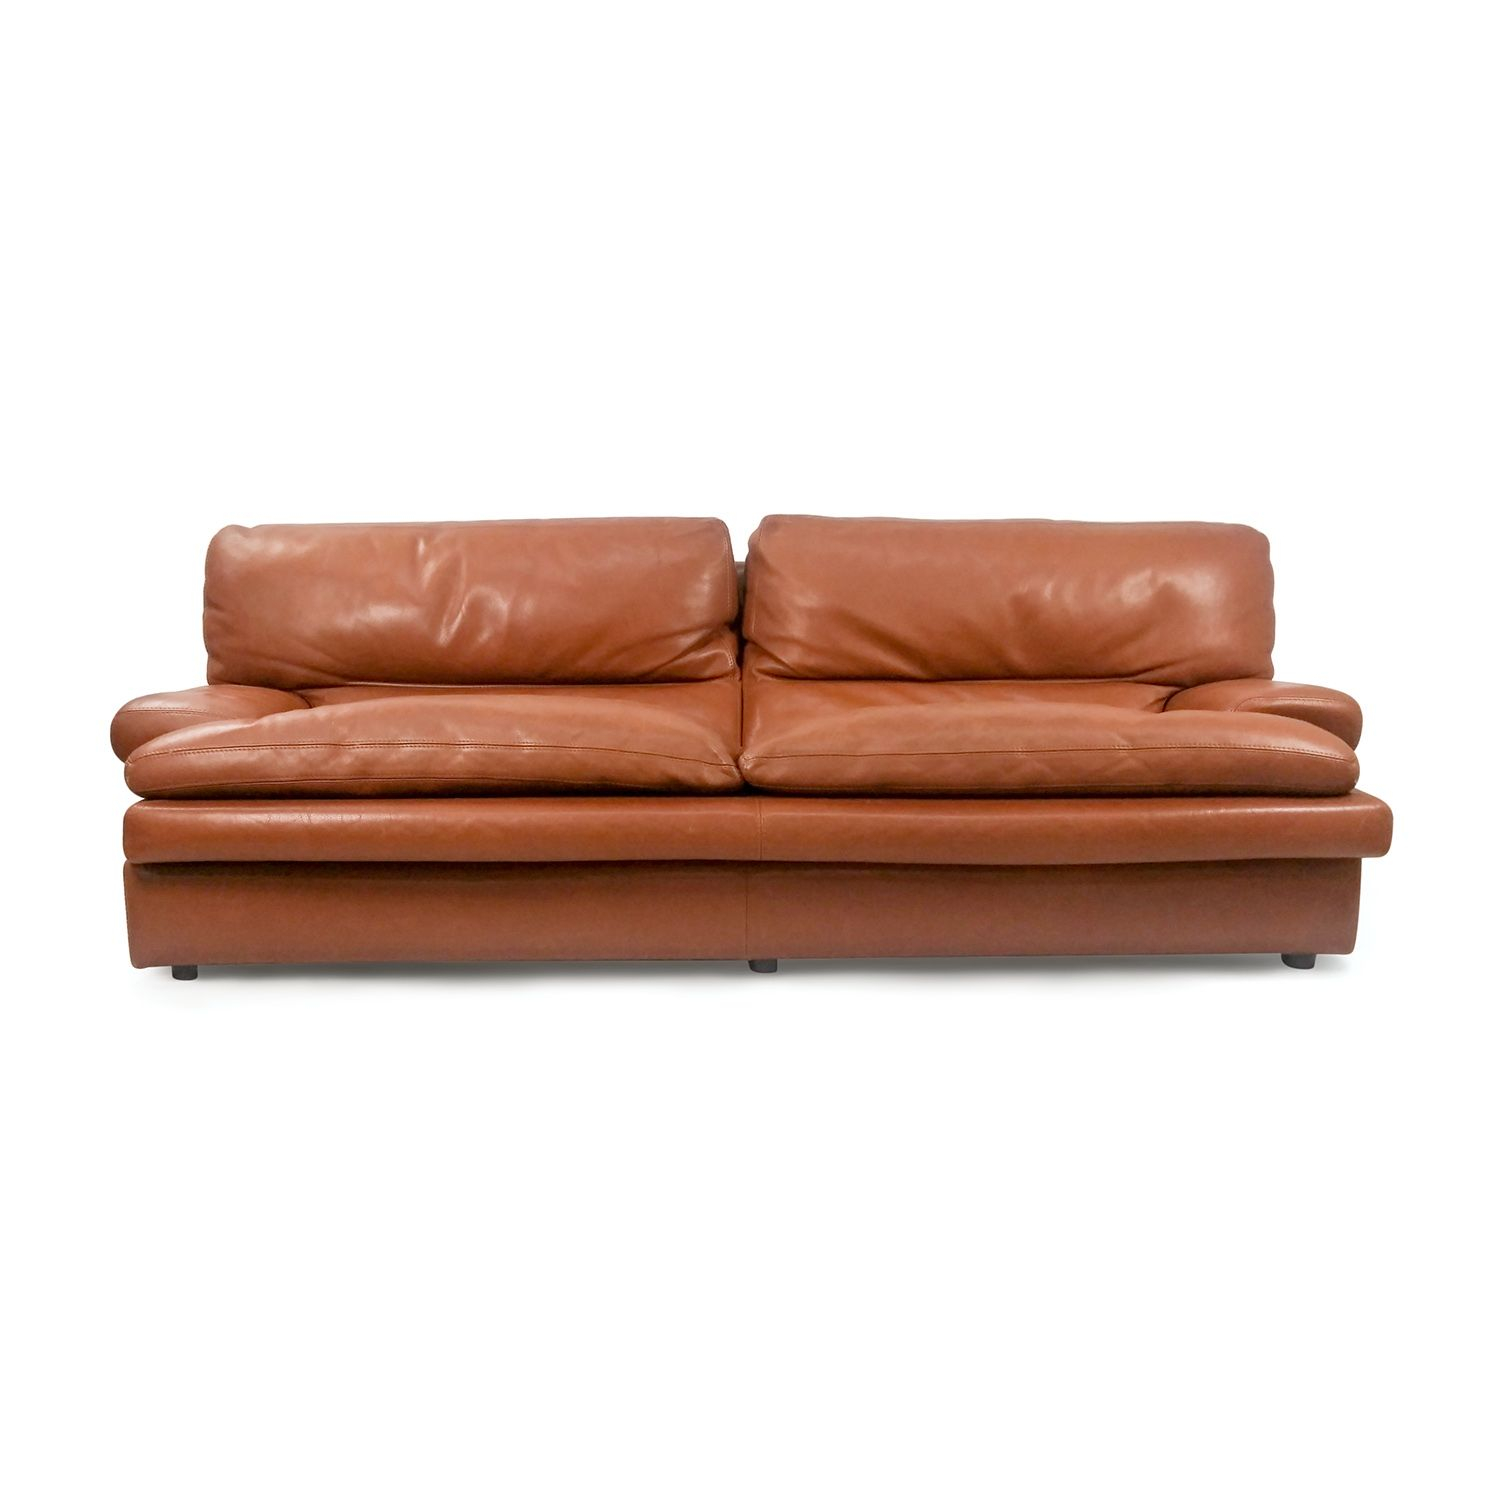 Roche Bobois Leather Sofa Furnishare Sales Leather Sofa within proportions 1500 X 1500